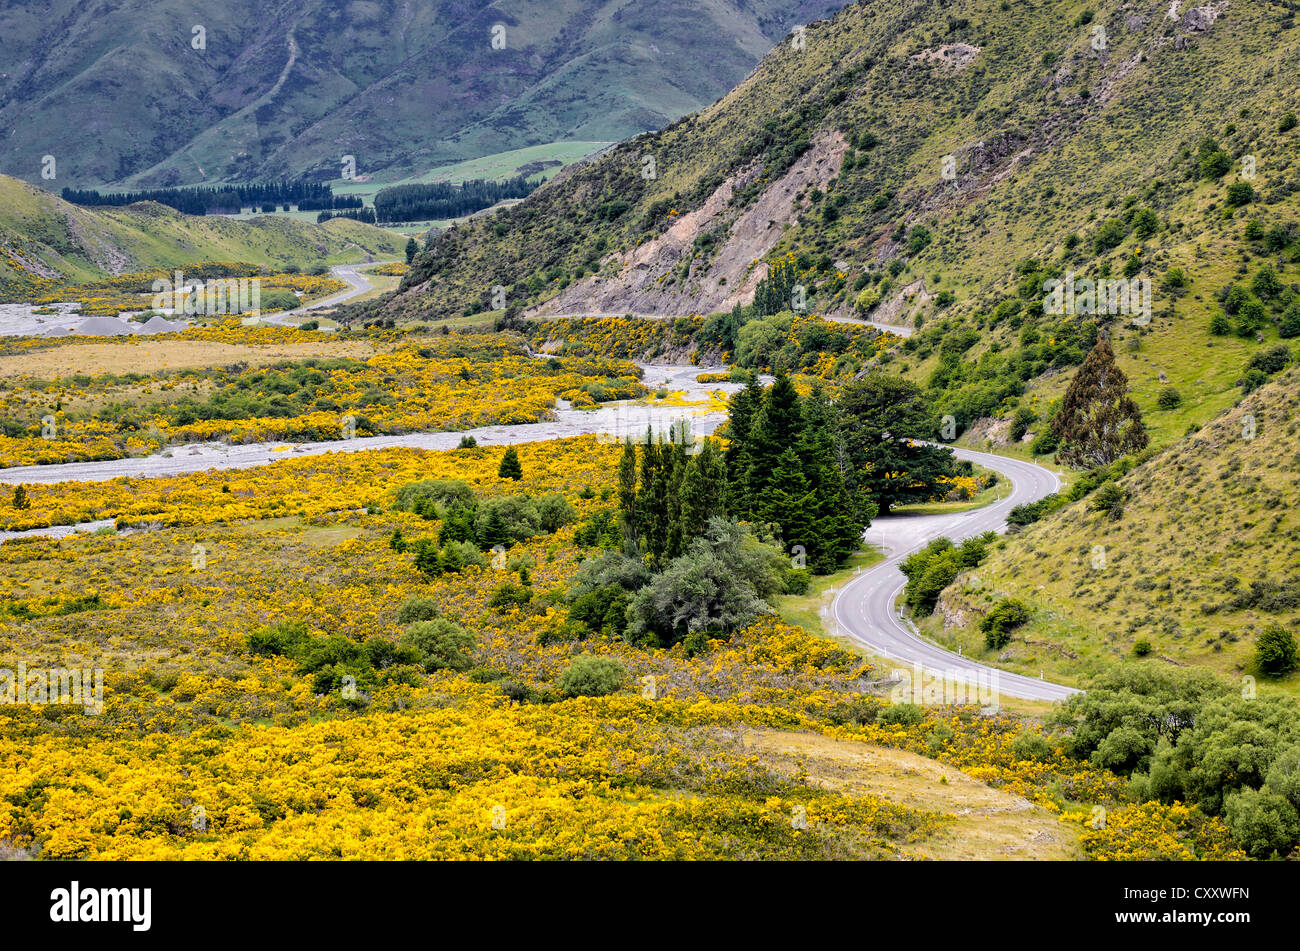 Country road winding through a valley with yellow flowers, driving on the left, Arthur's Pass Road, South Island, - Stock Image